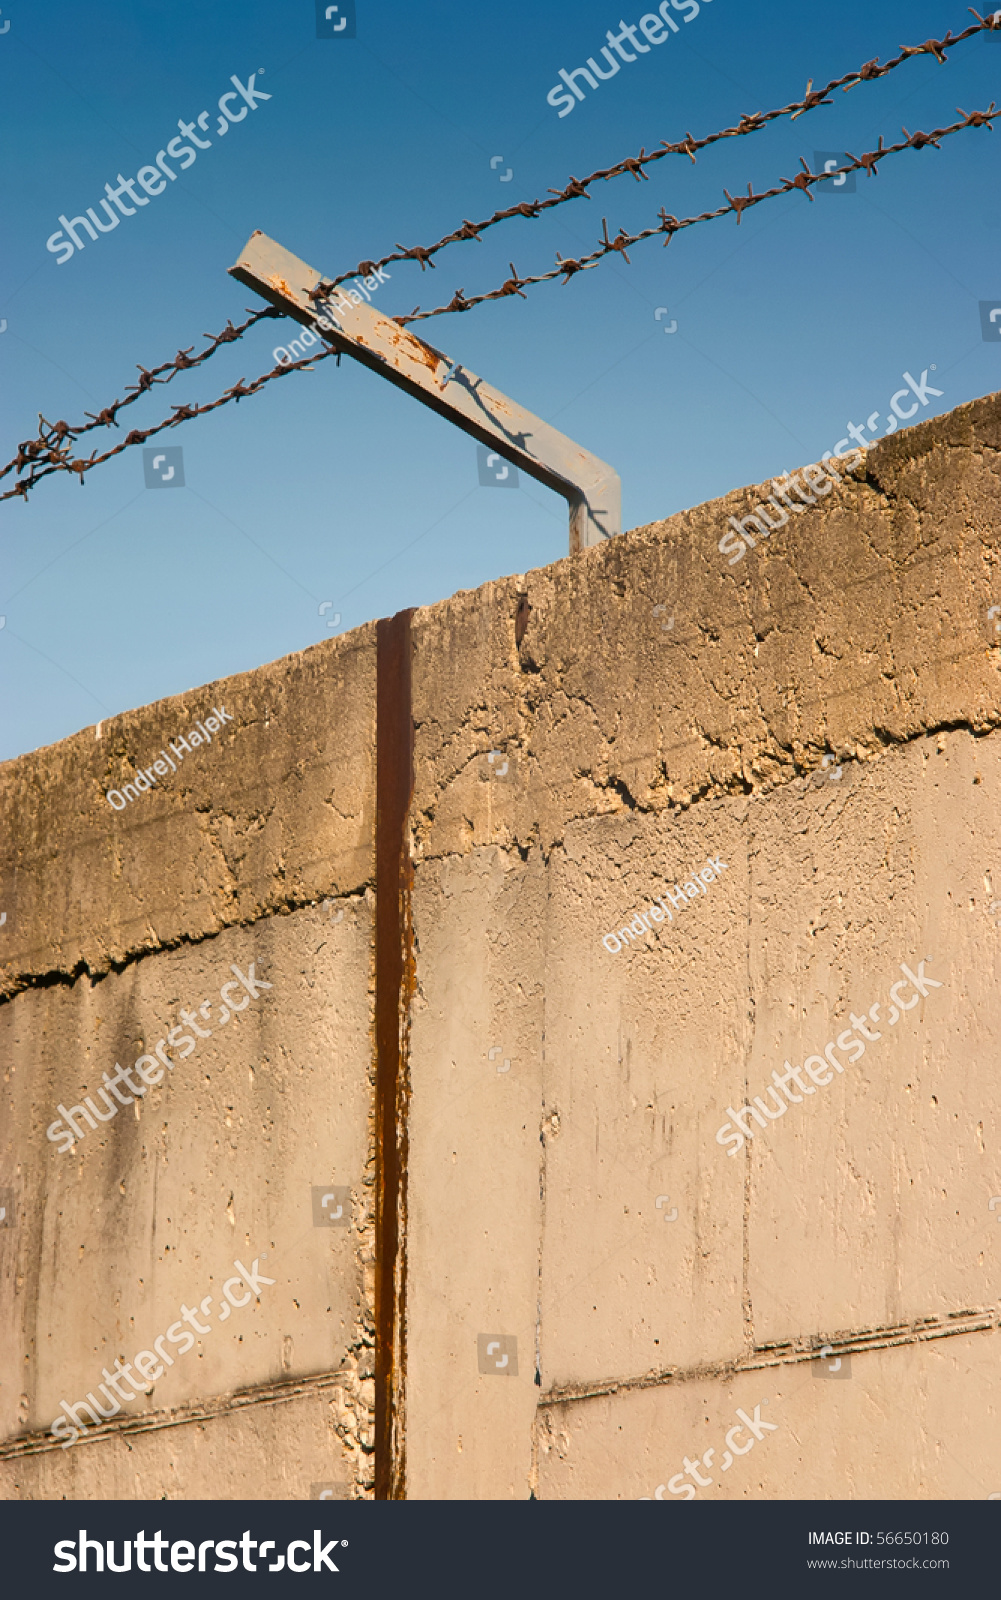 Barbed wire over old concrete wall stock photo